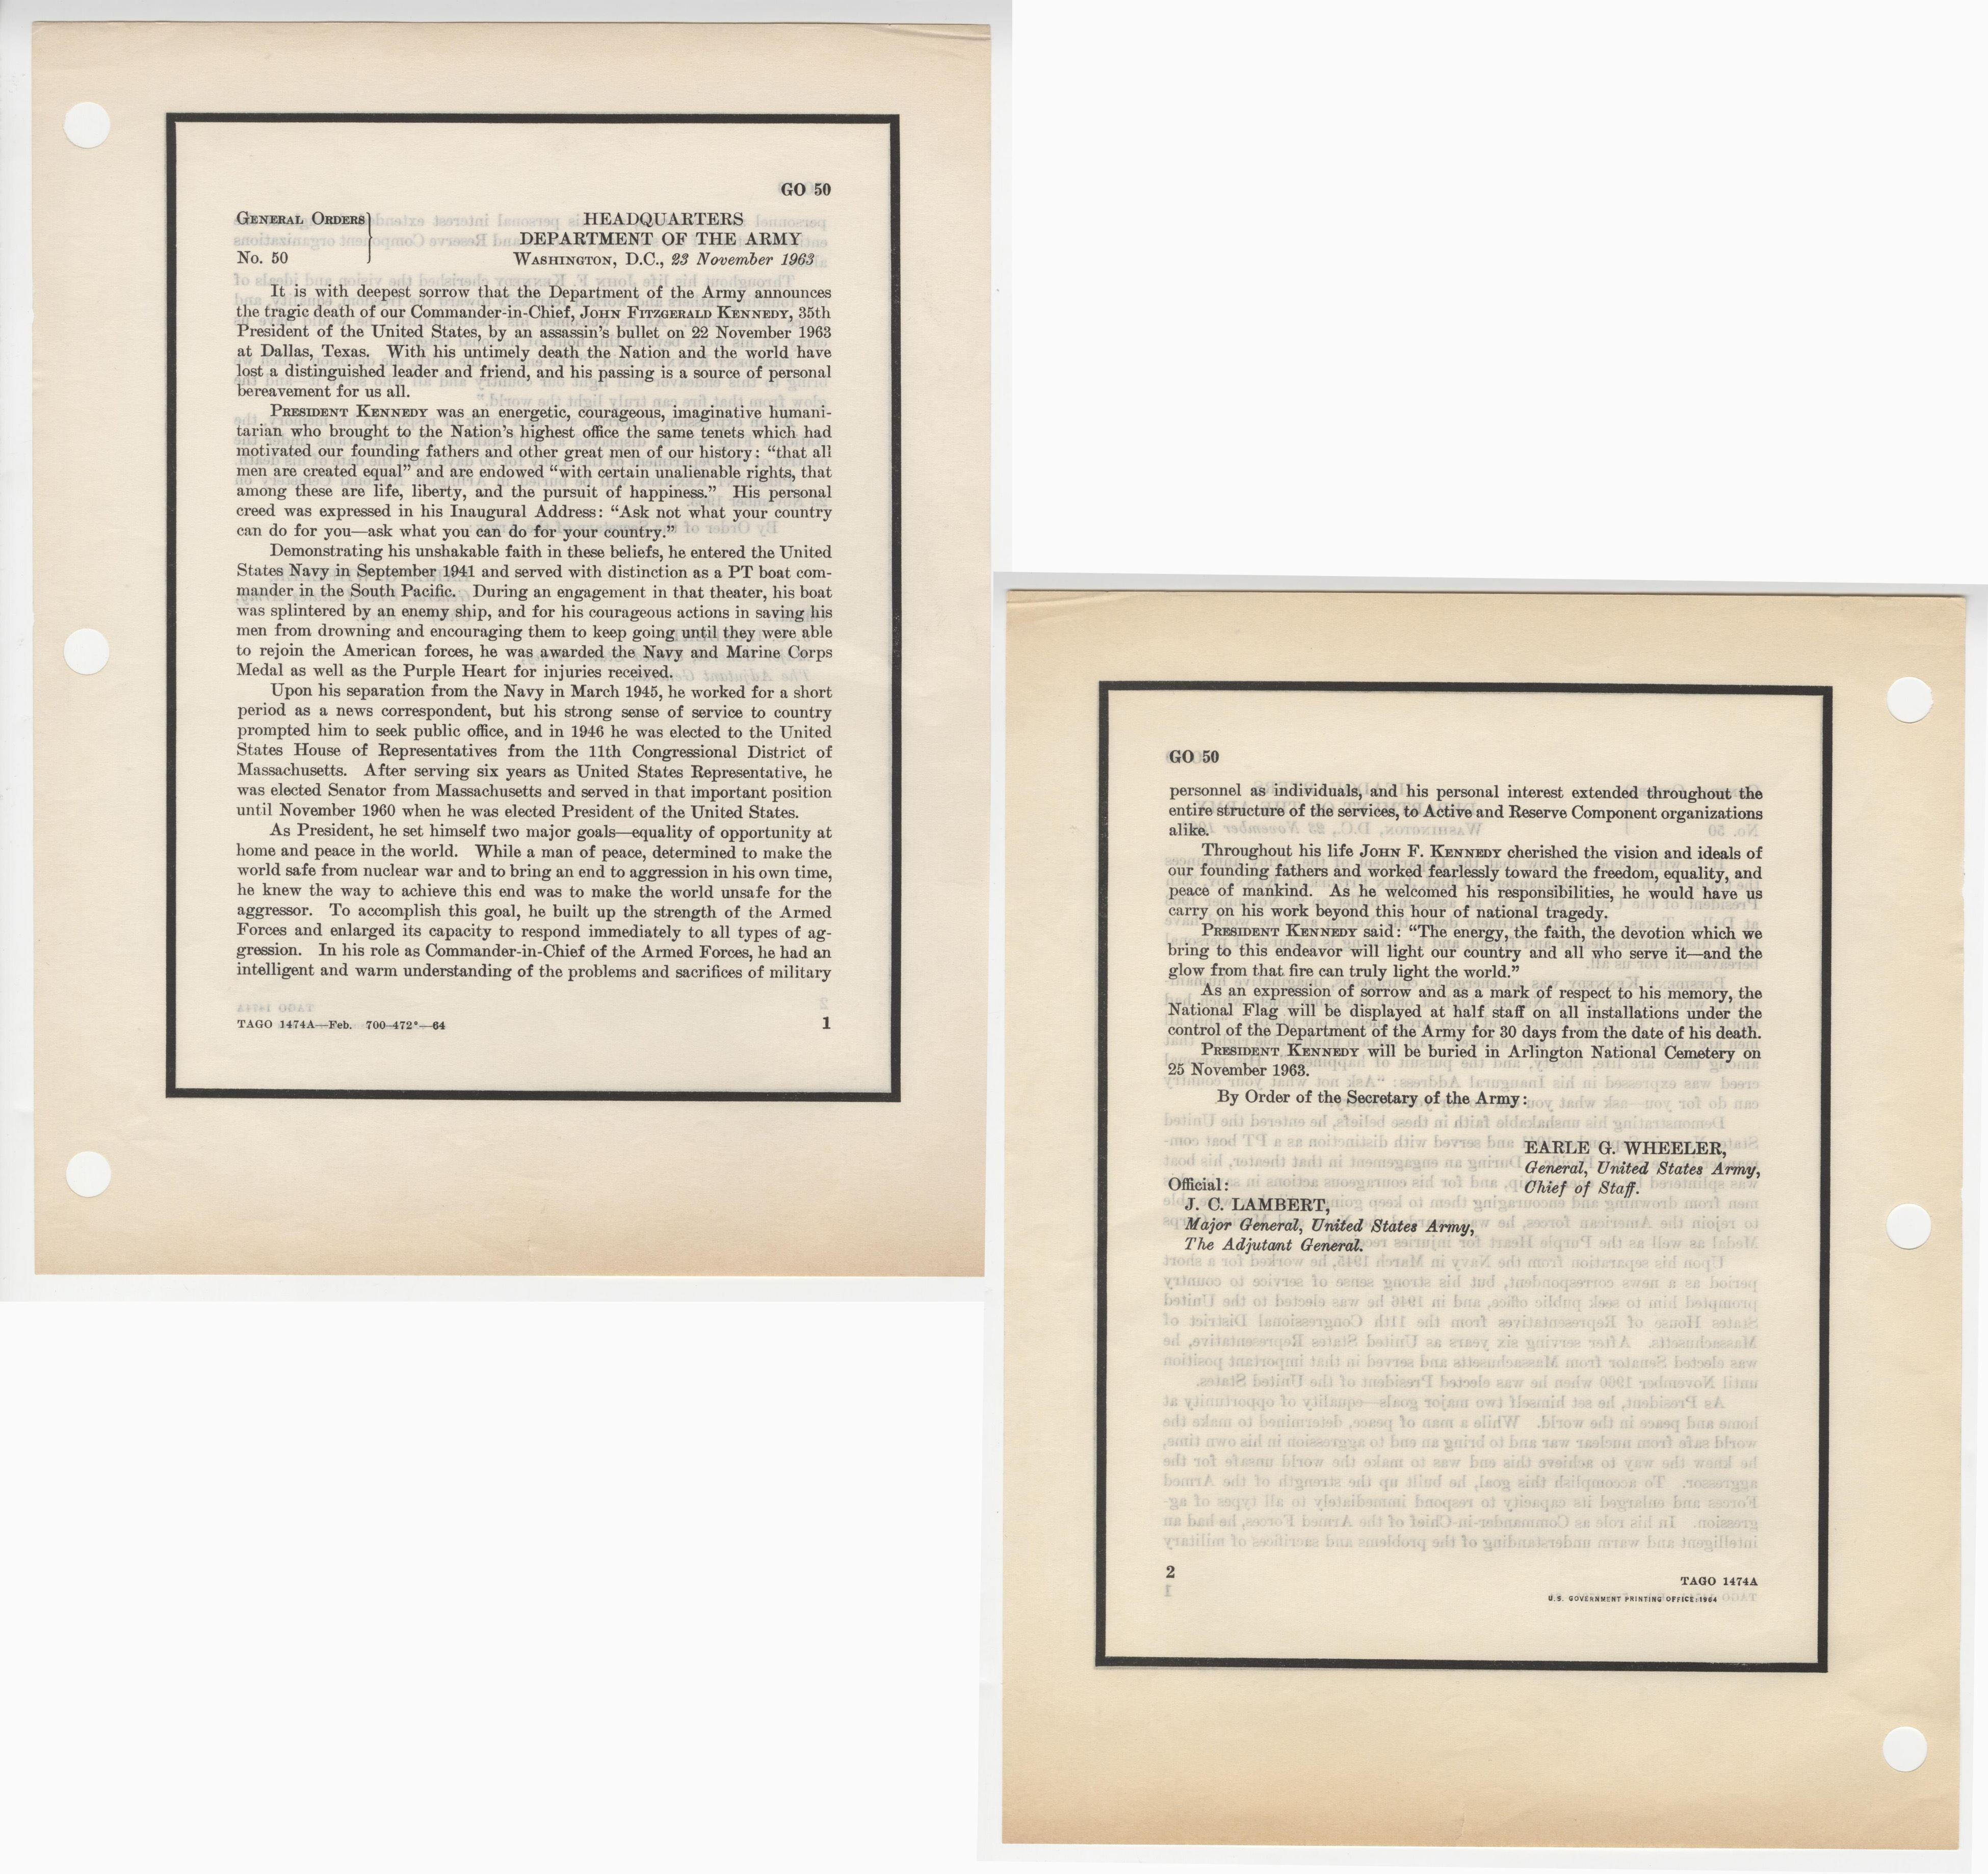 John F. Kennedy Assassination Broadside Notice Printed by the Army